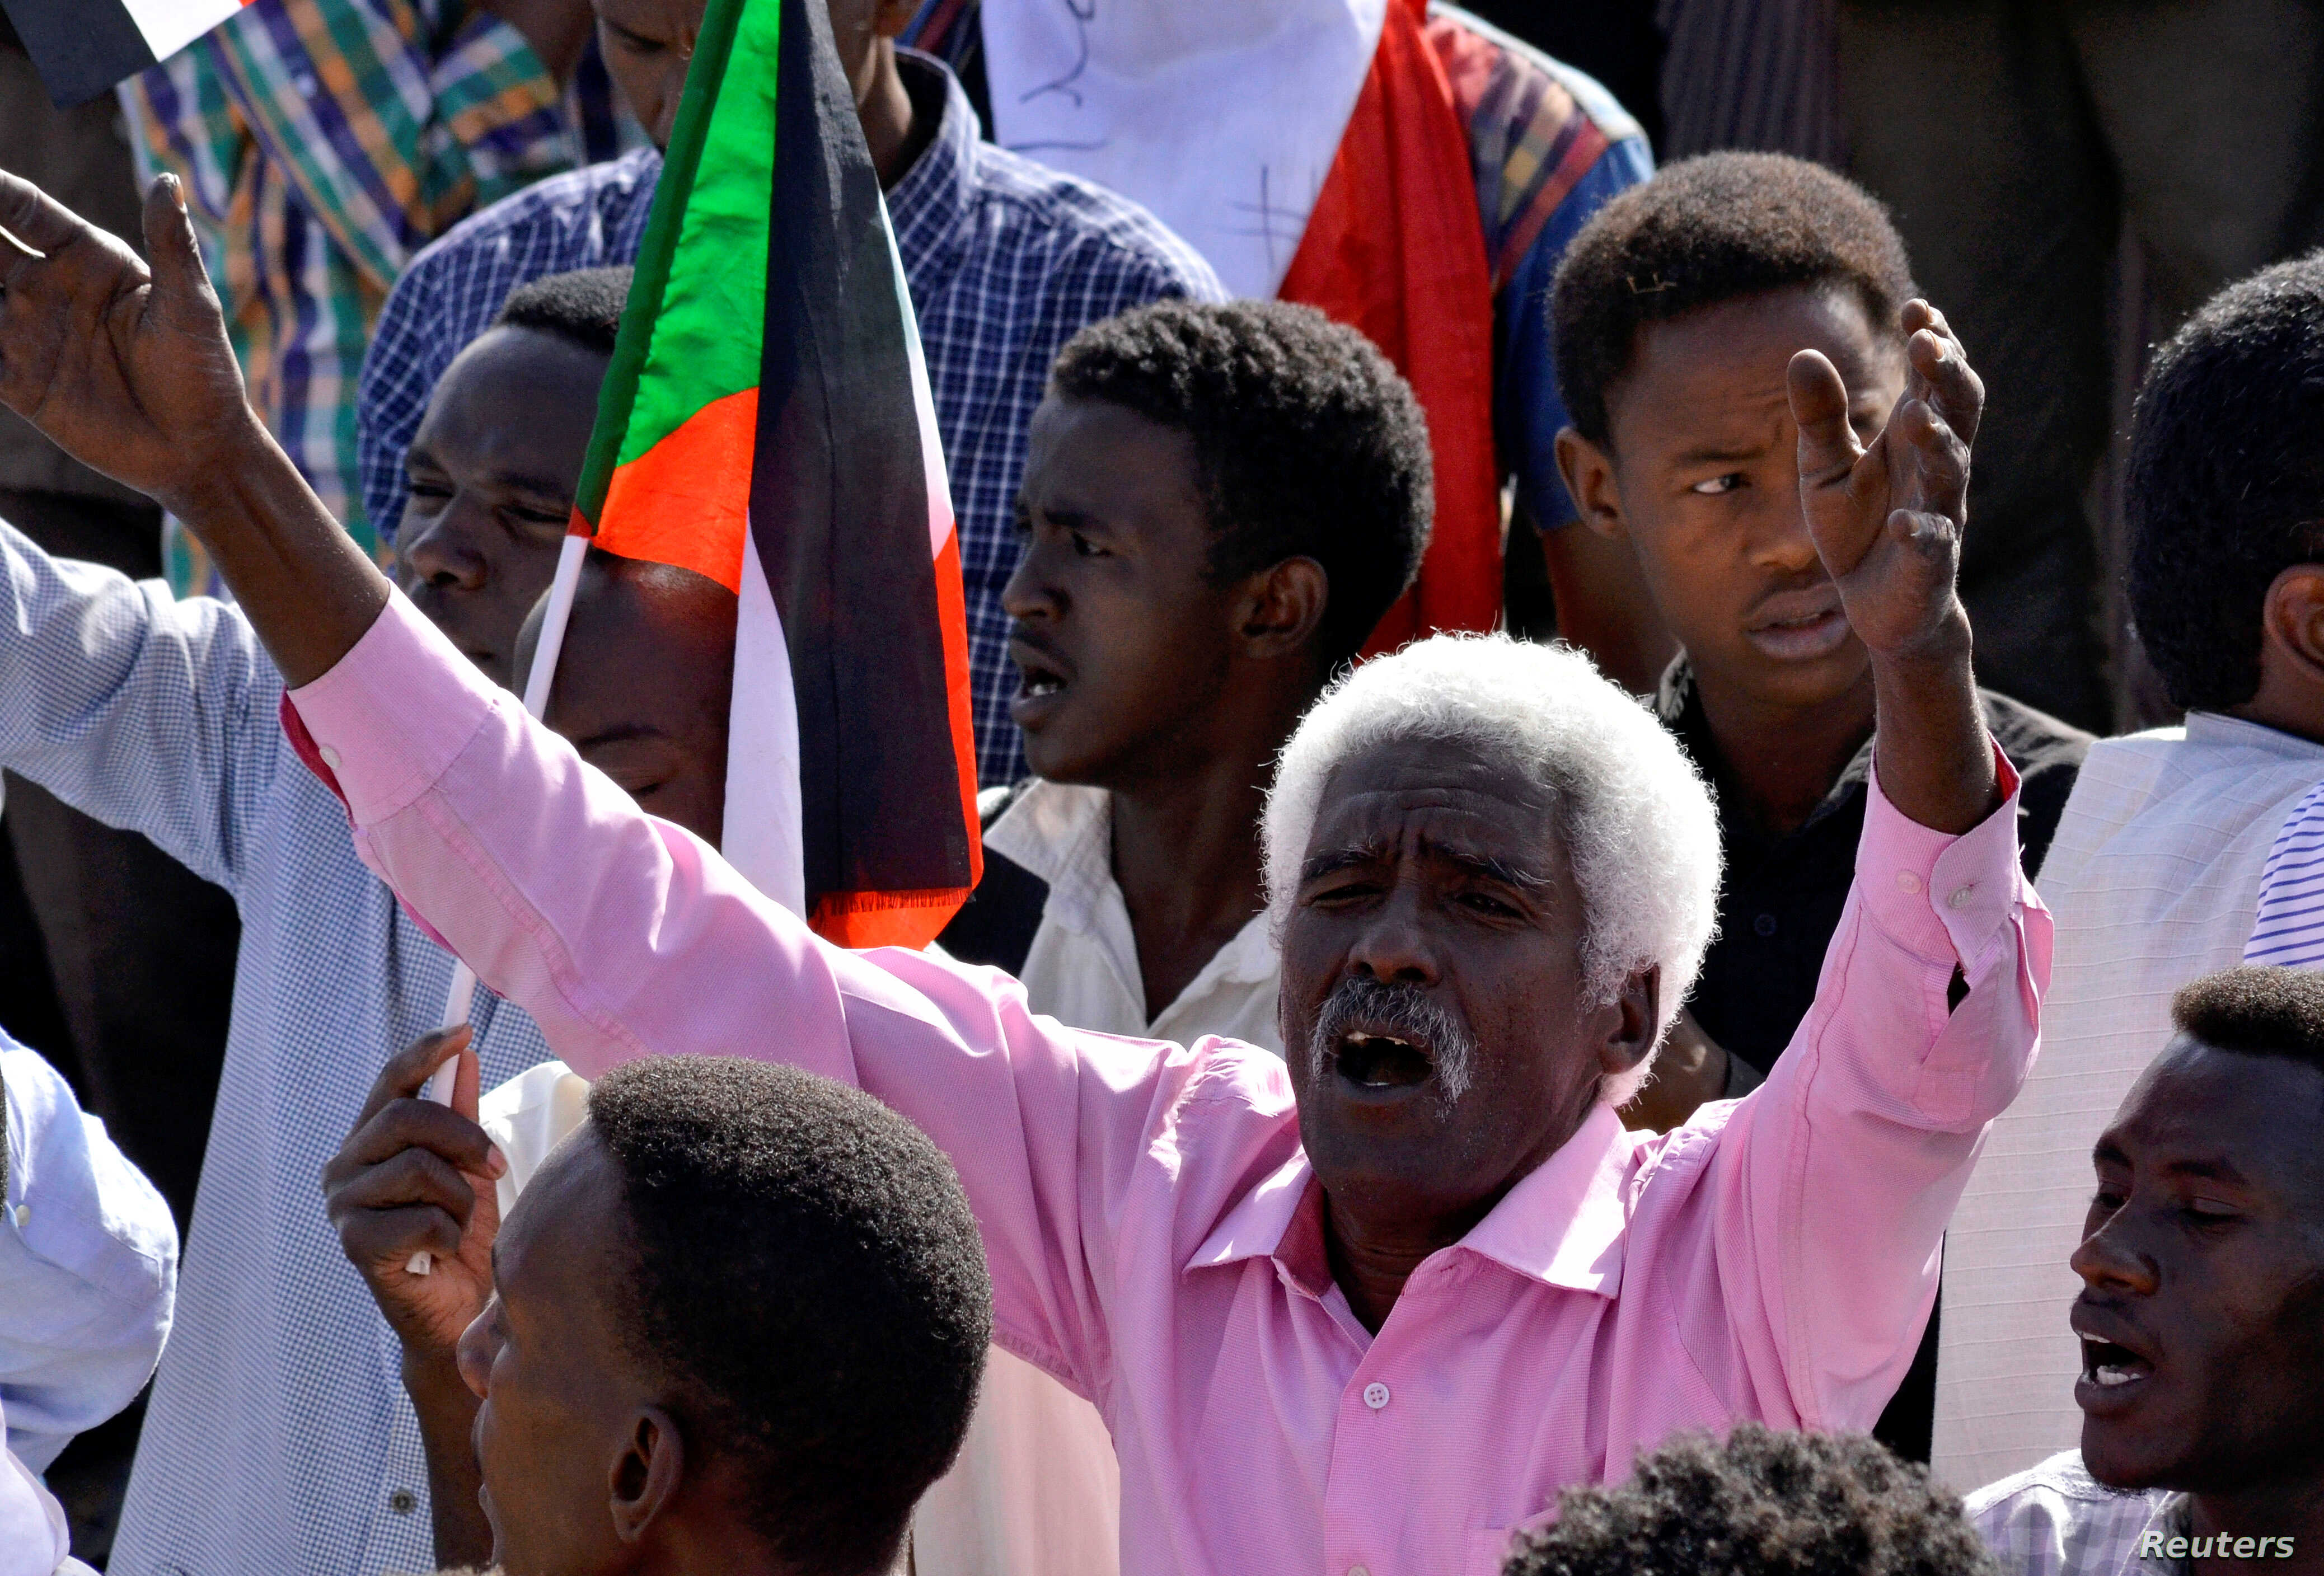 A Sudanese demonstrator celebrates after Defense Minister Awad Ibn Auf stepped down as head of the country's transitional ruling military council, near the Defense Ministry in Khartoum, Sudan, April 13, 2019.